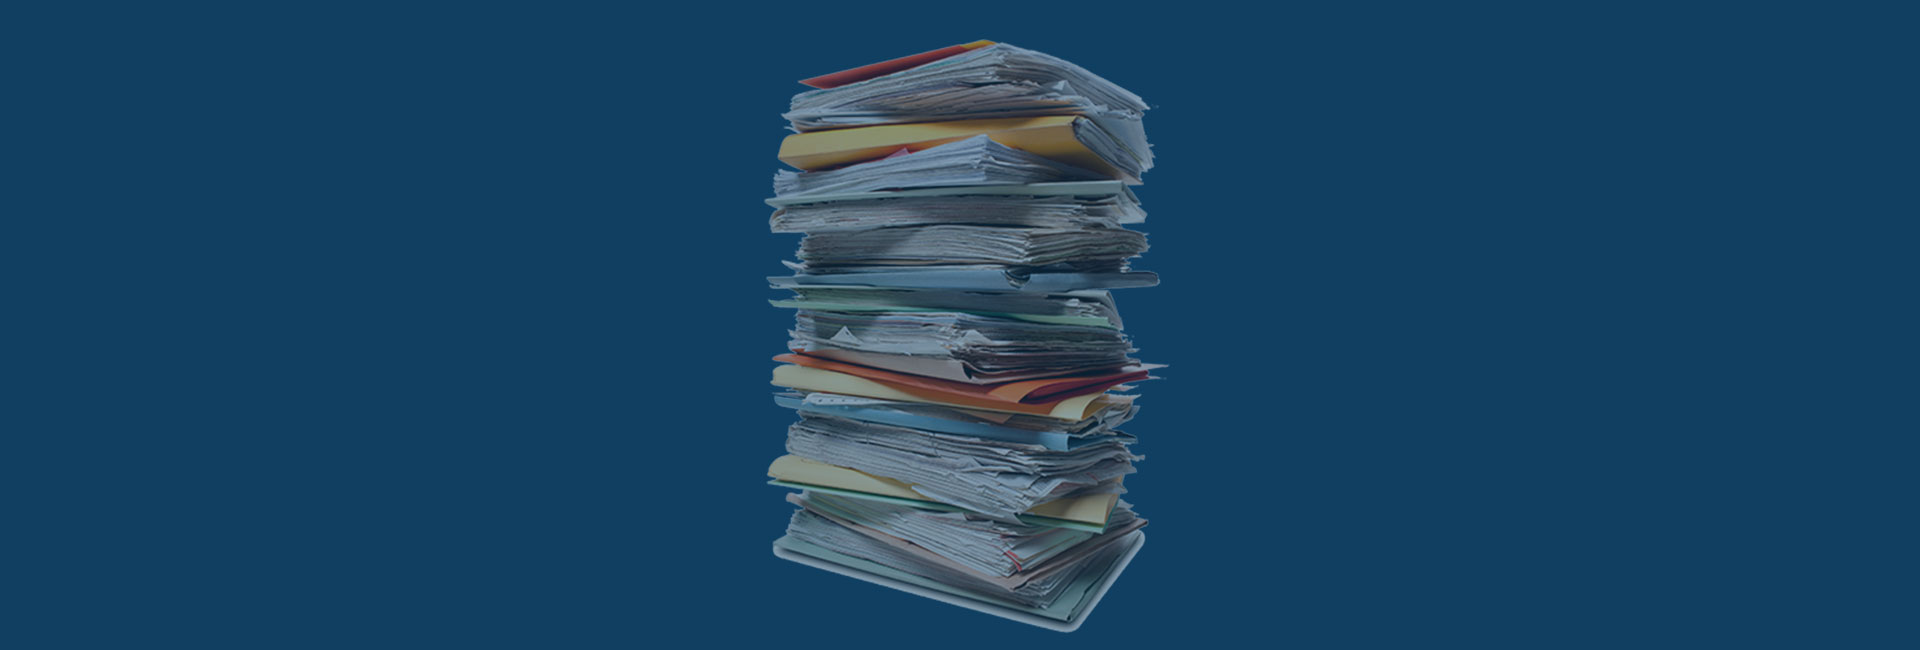 Quantity of Response Documents – PiPRIndex Marker of Public Records Complexity